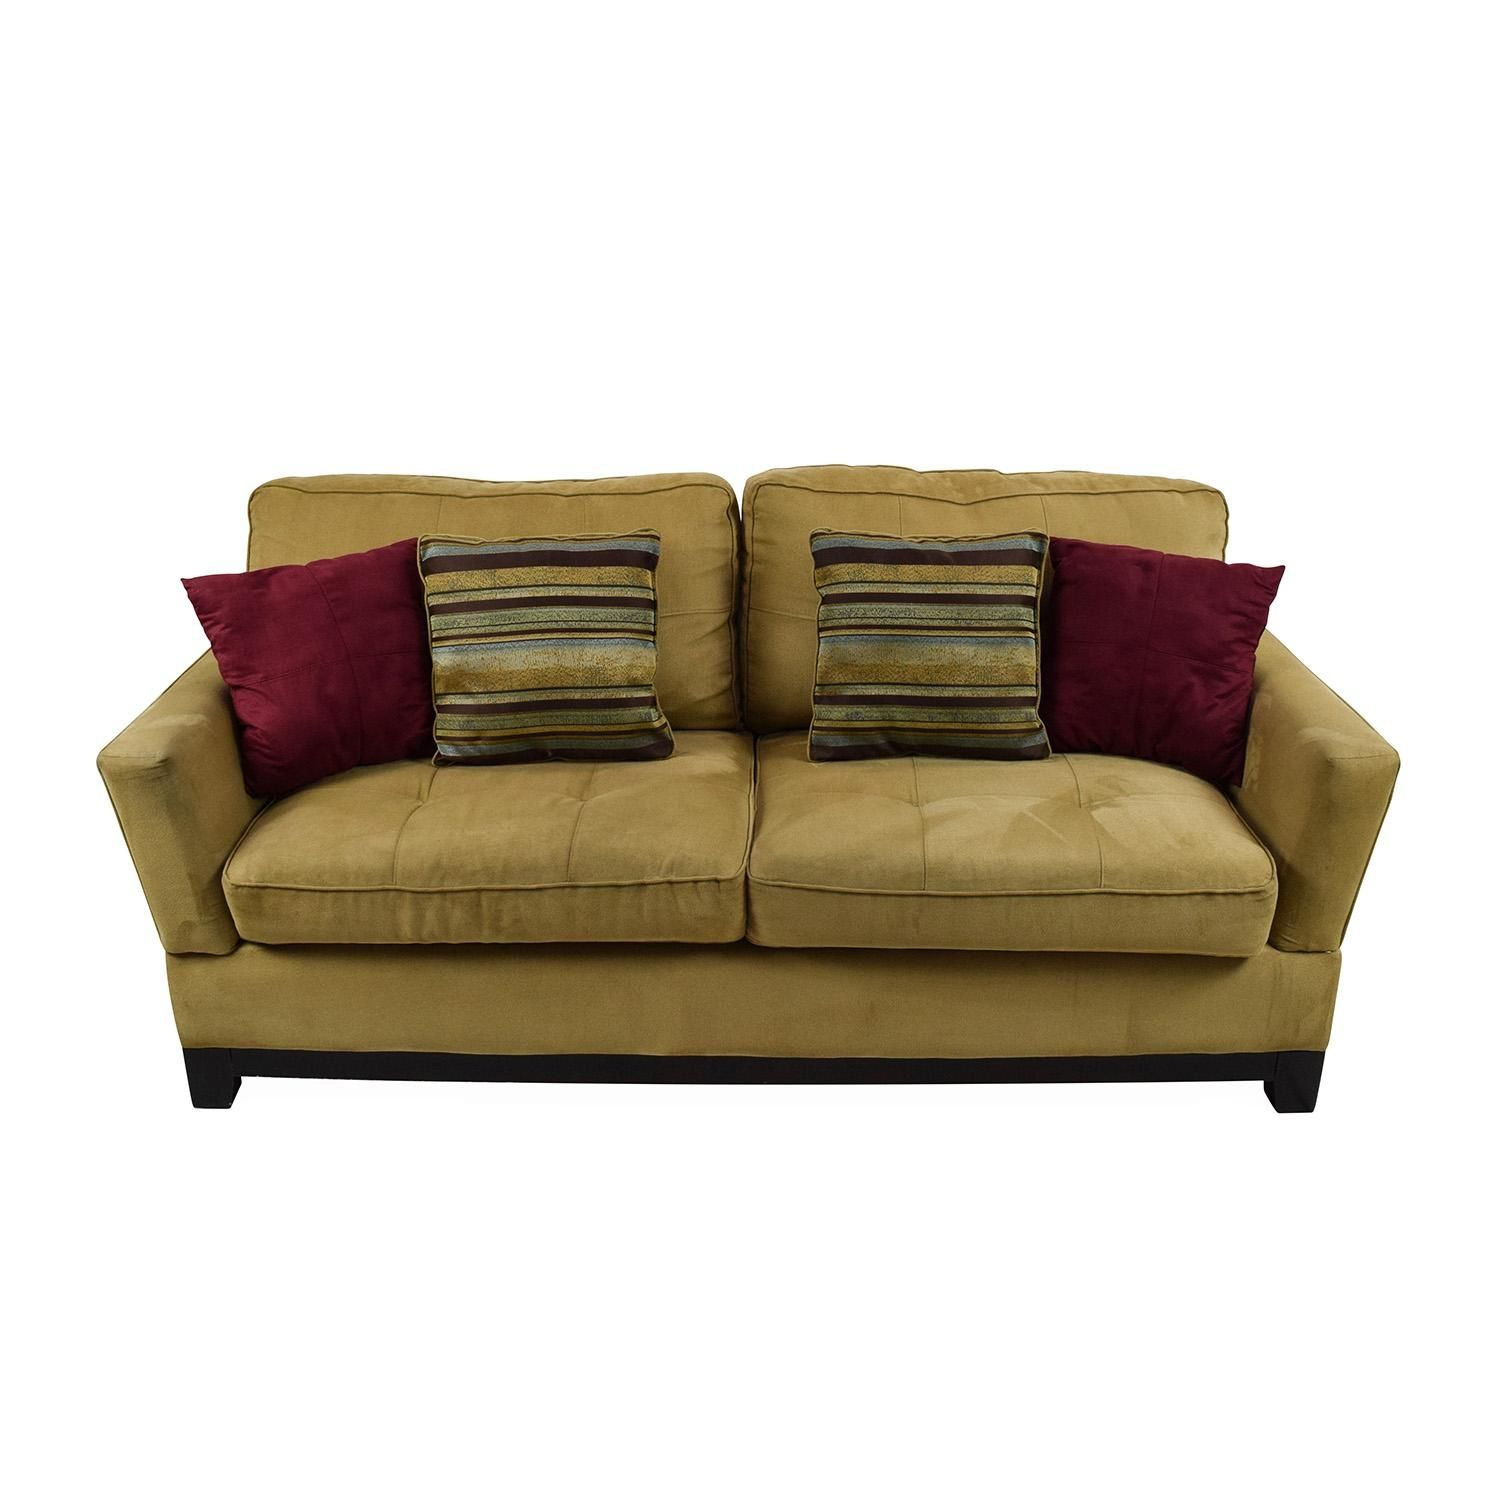 cute jennifer convertible sofas pattern-Wonderful Jennifer Convertible sofas Gallery